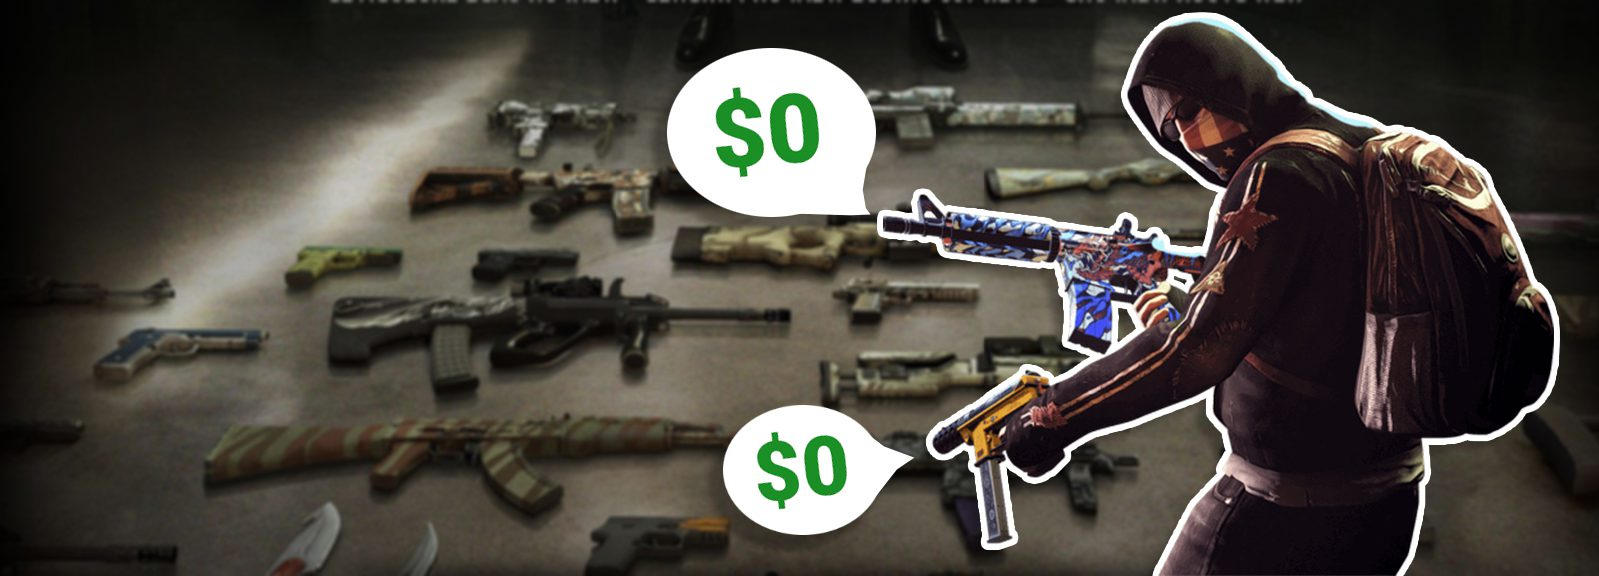 Free skins CS:GO - Sites with freebies and no deposit